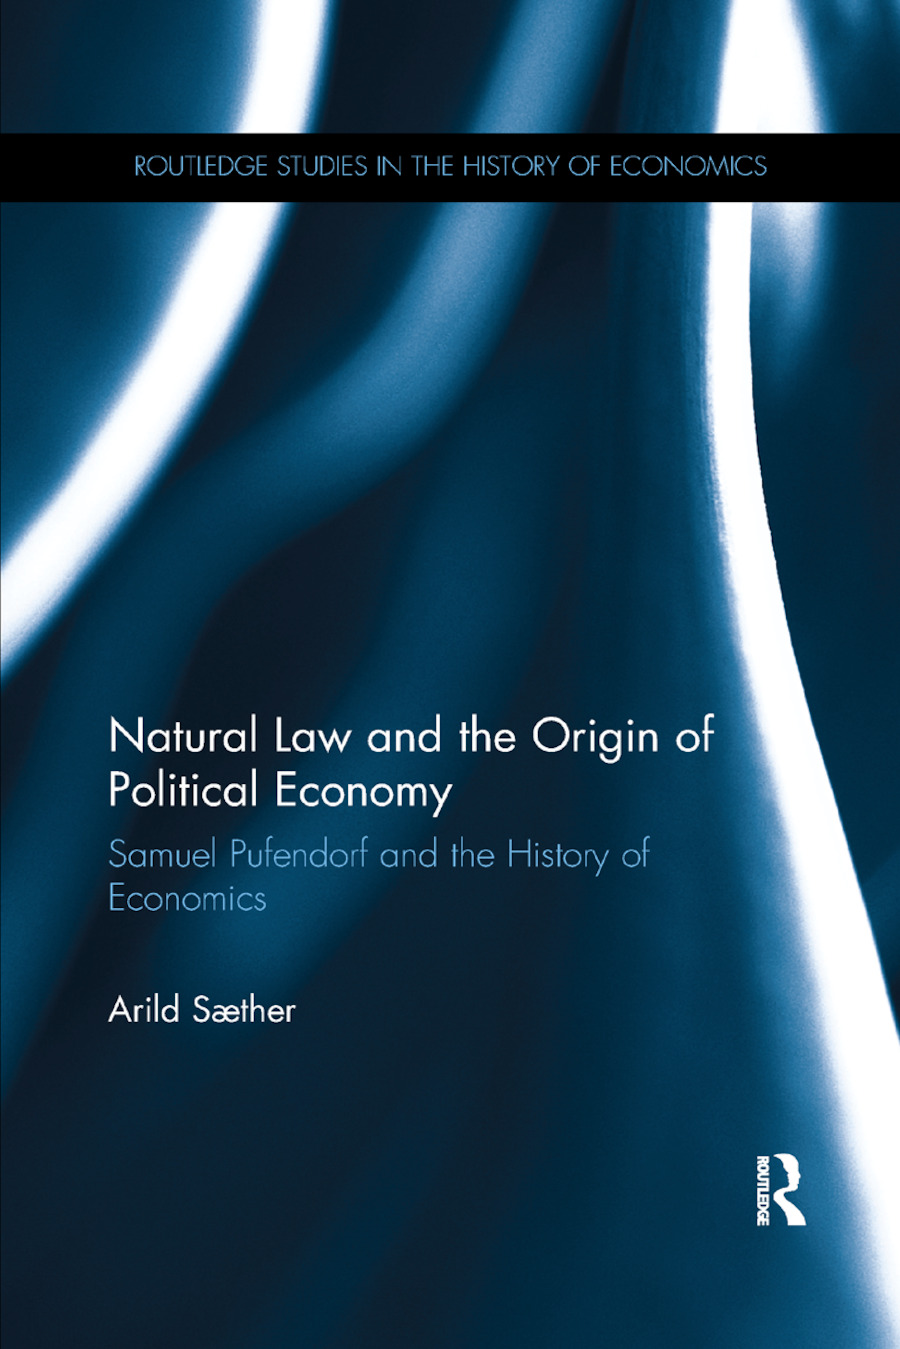 Natural Law and the Origin of Political Economy: Samuel Pufendorf and the History of Economics book cover